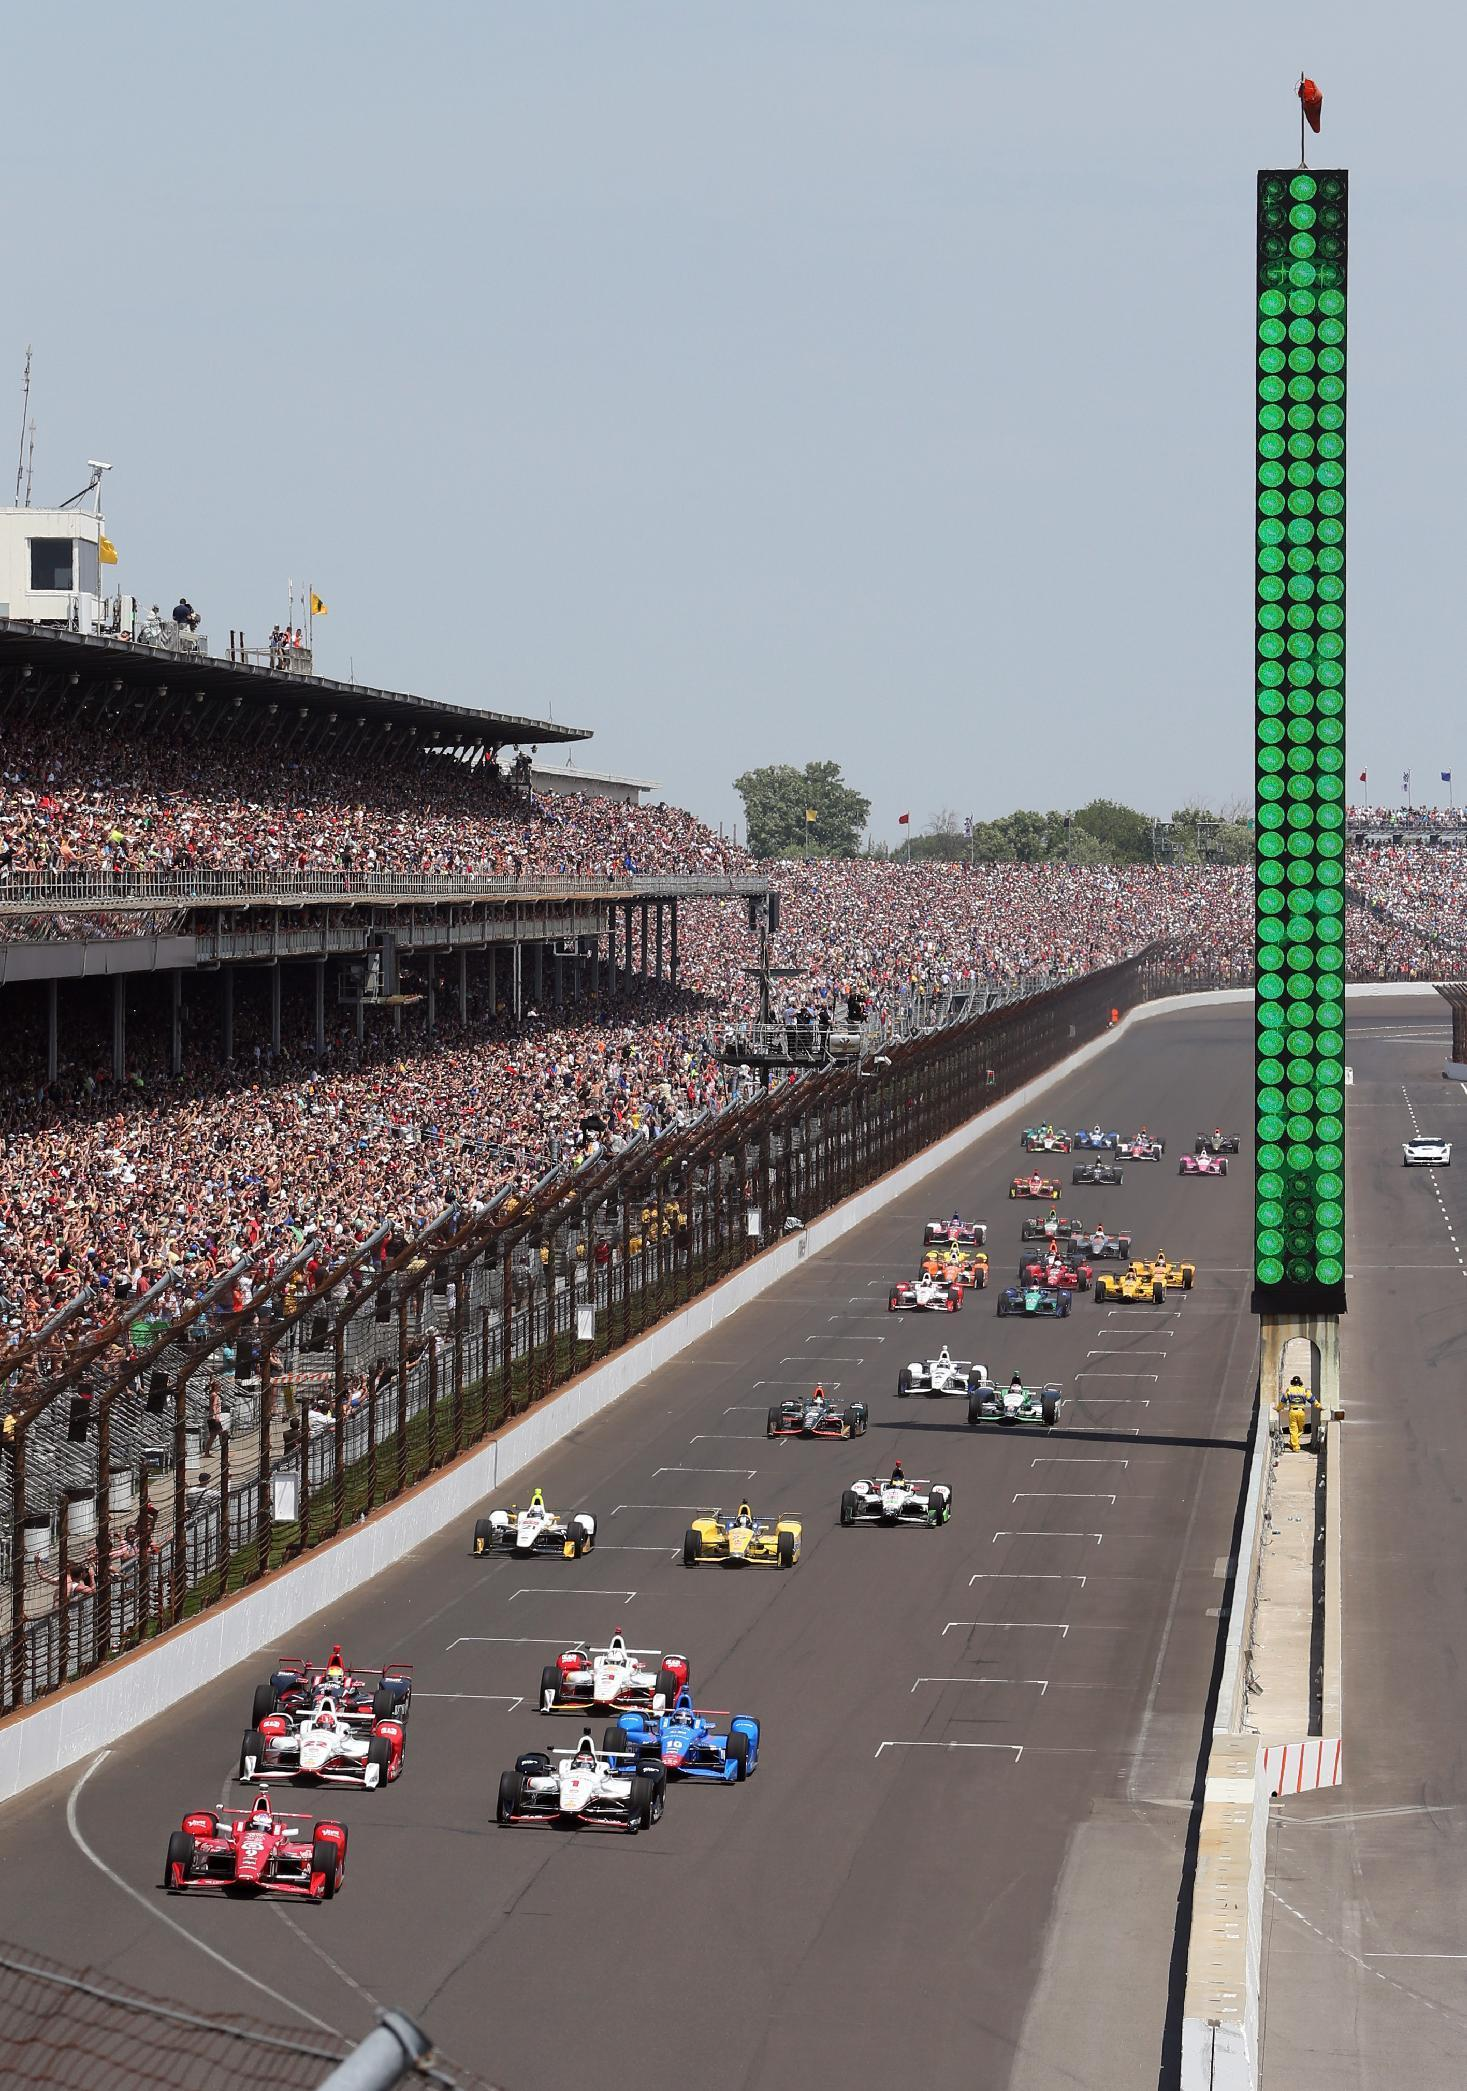 Rahal leads Honda with fifth place finish in Indy 500